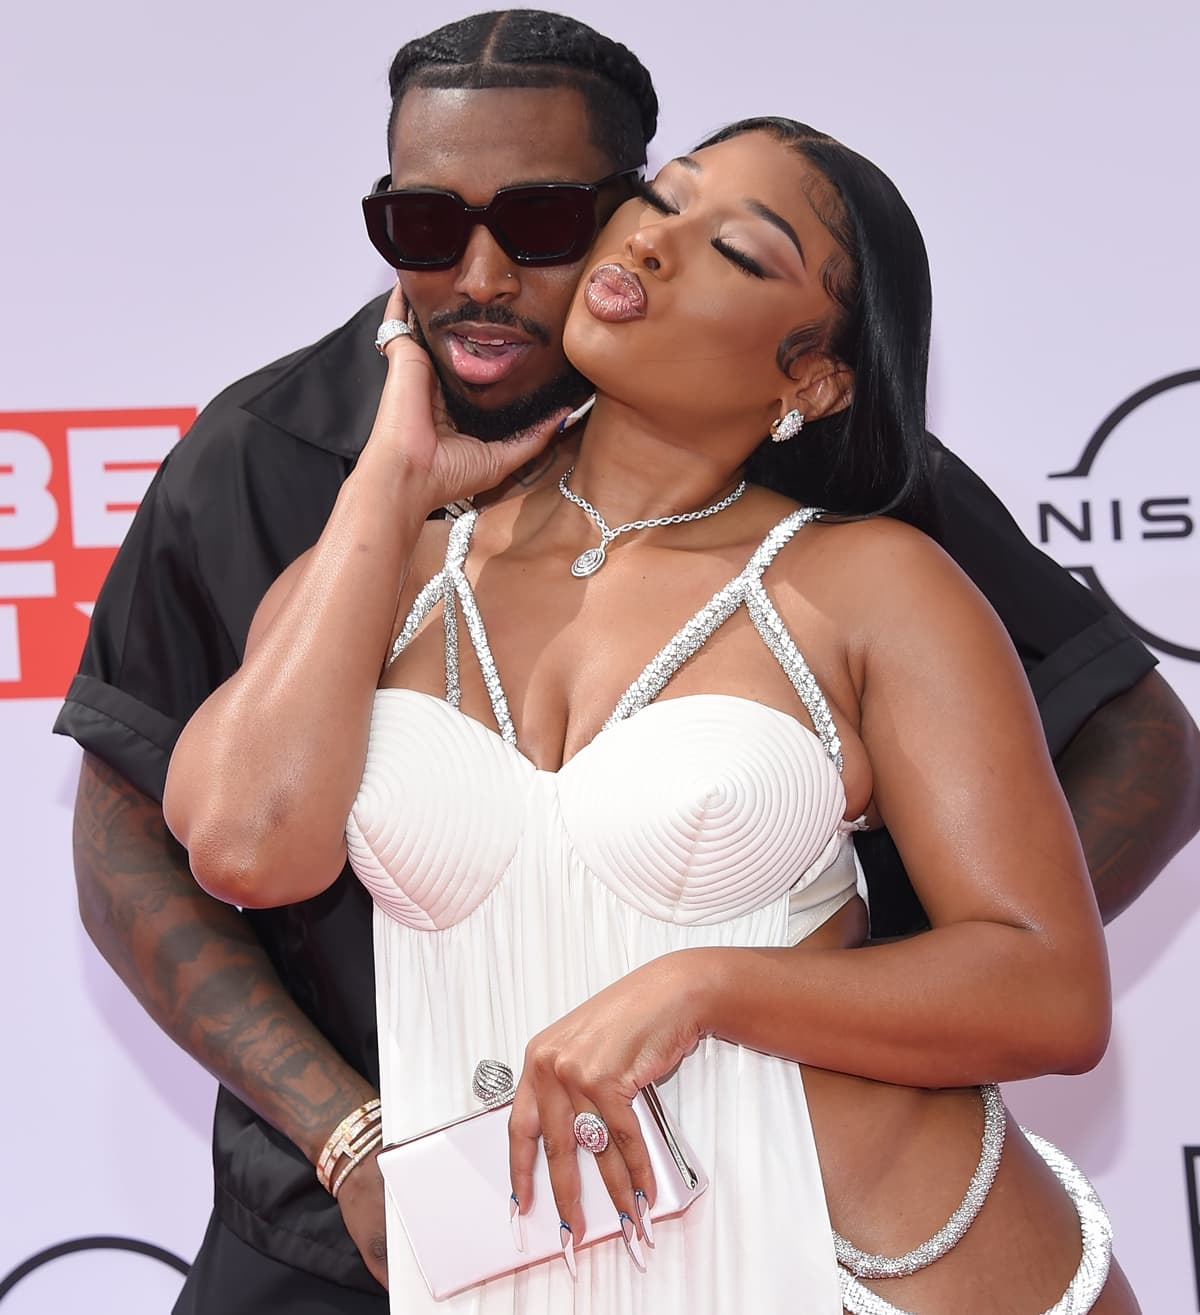 Megan Thee Stallion started dating fellow rapper Pardison Fontaine in February 2021